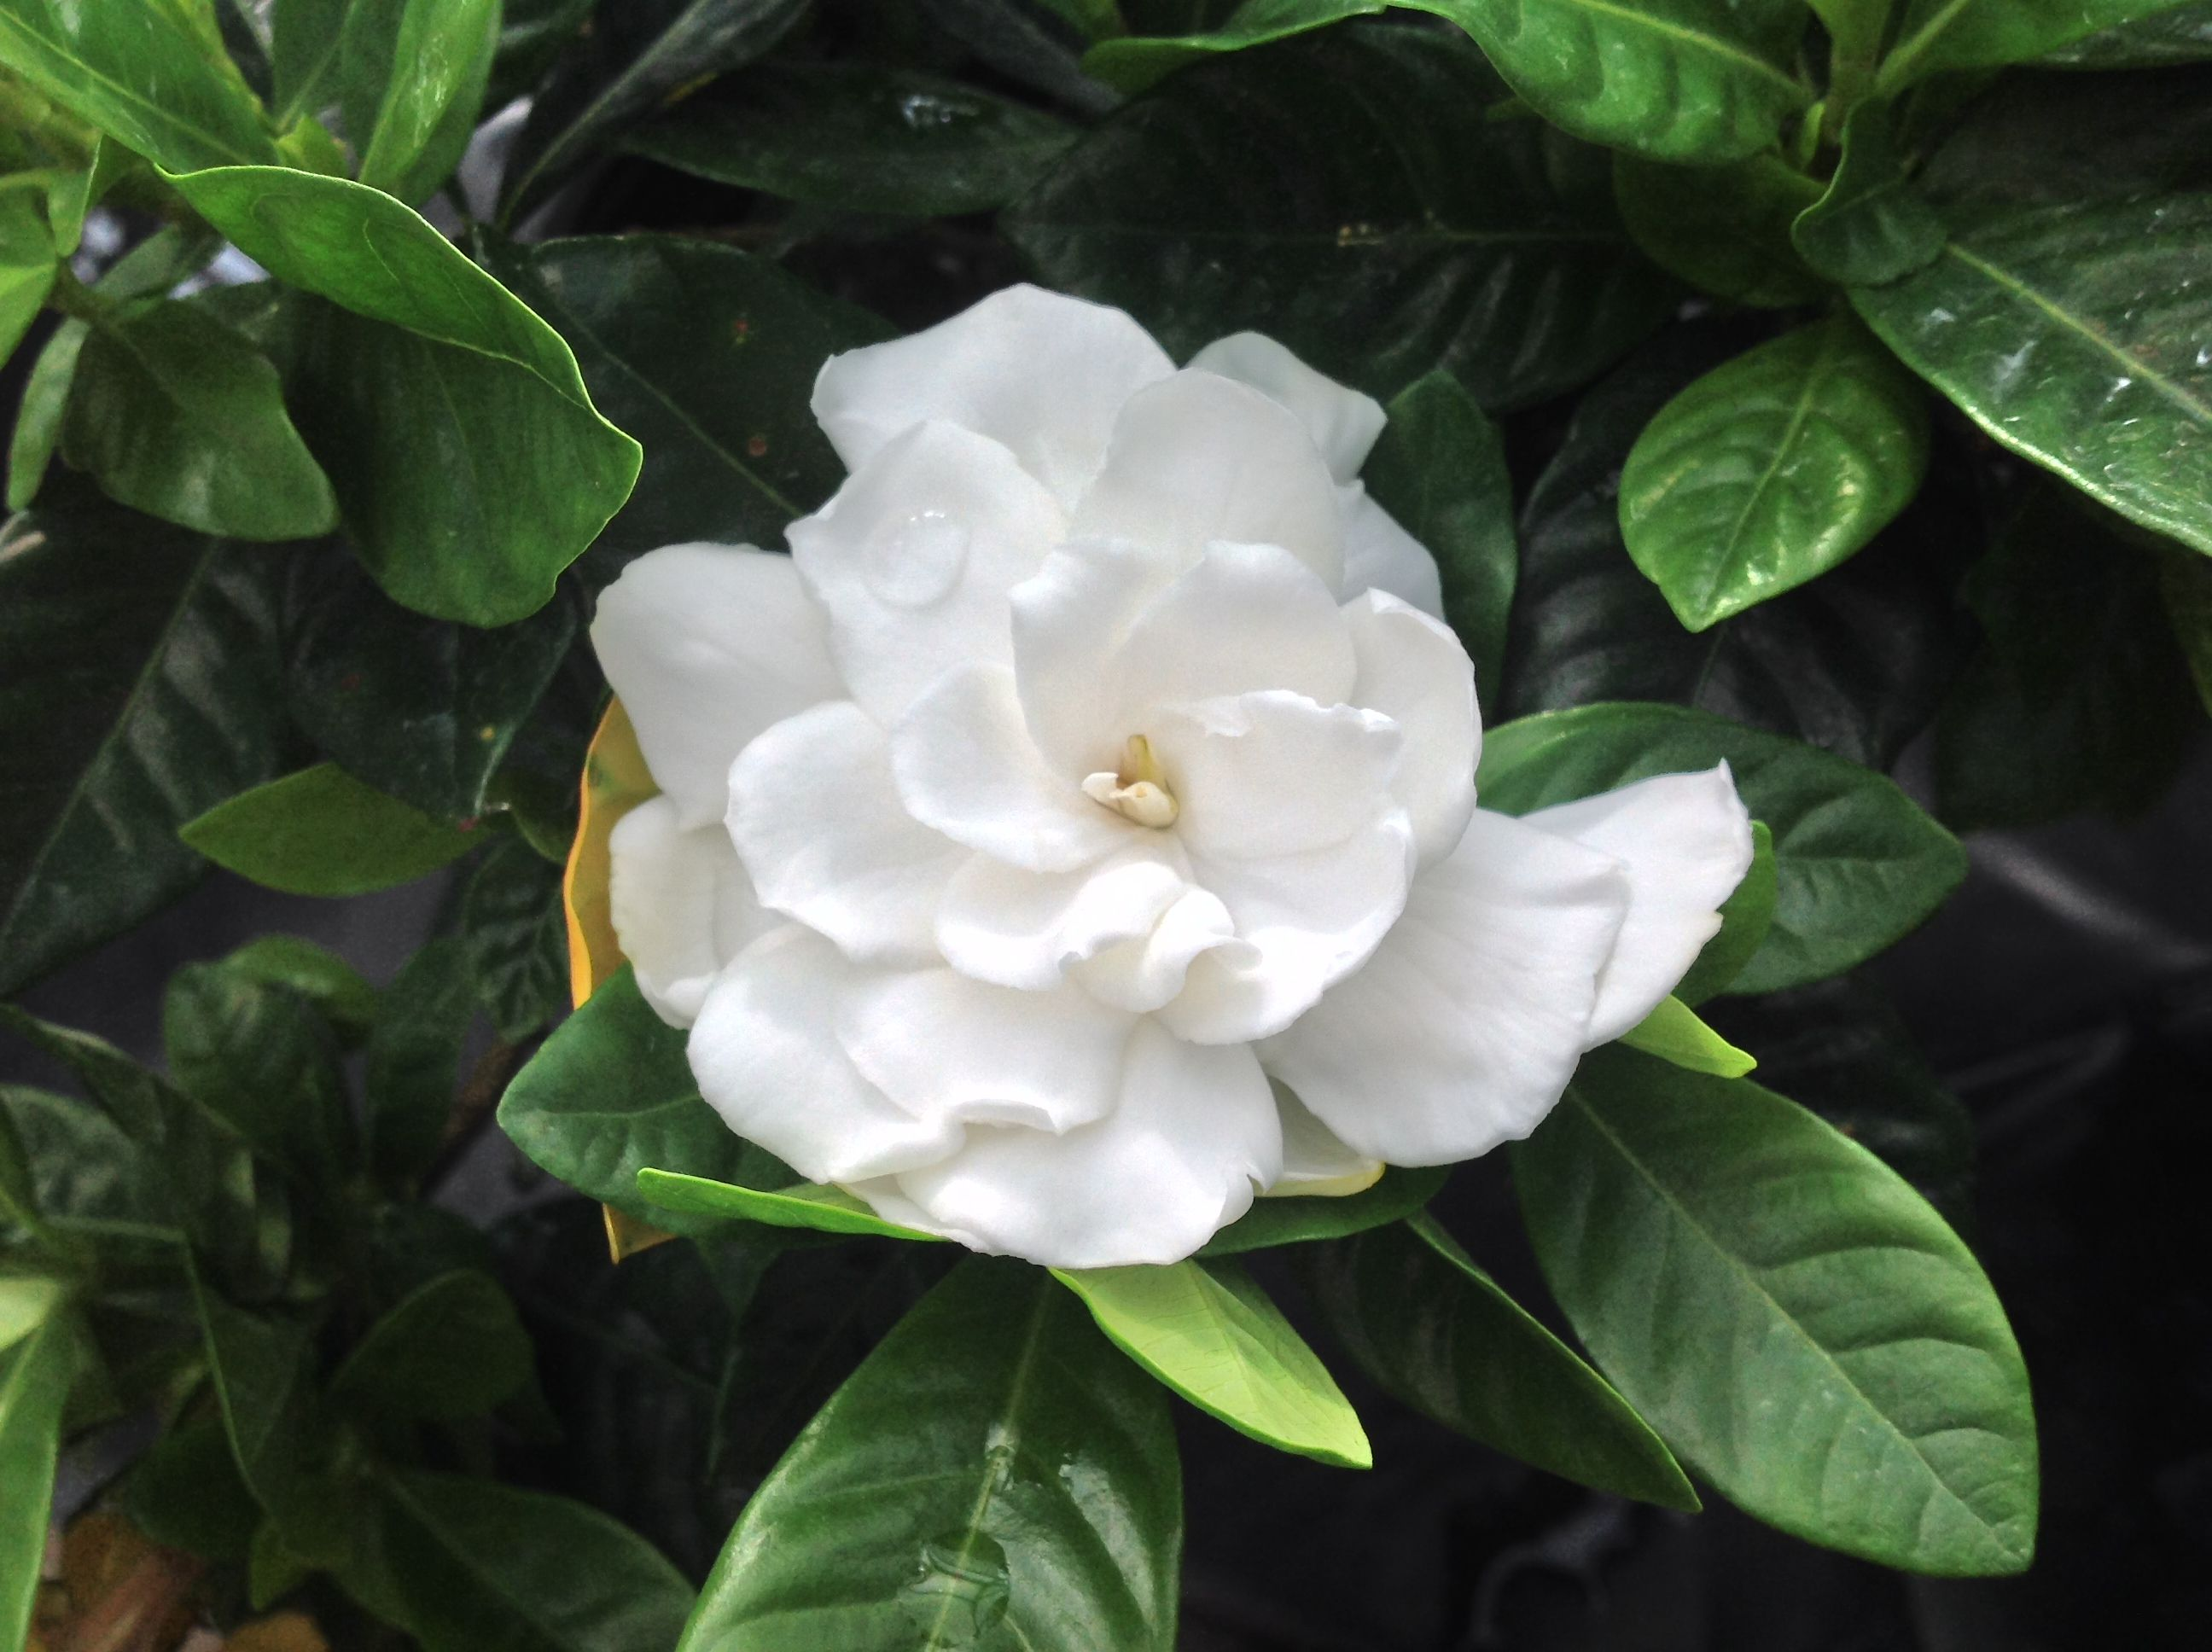 A Single Gardenia Blossom The Fragrance Is Incredible White